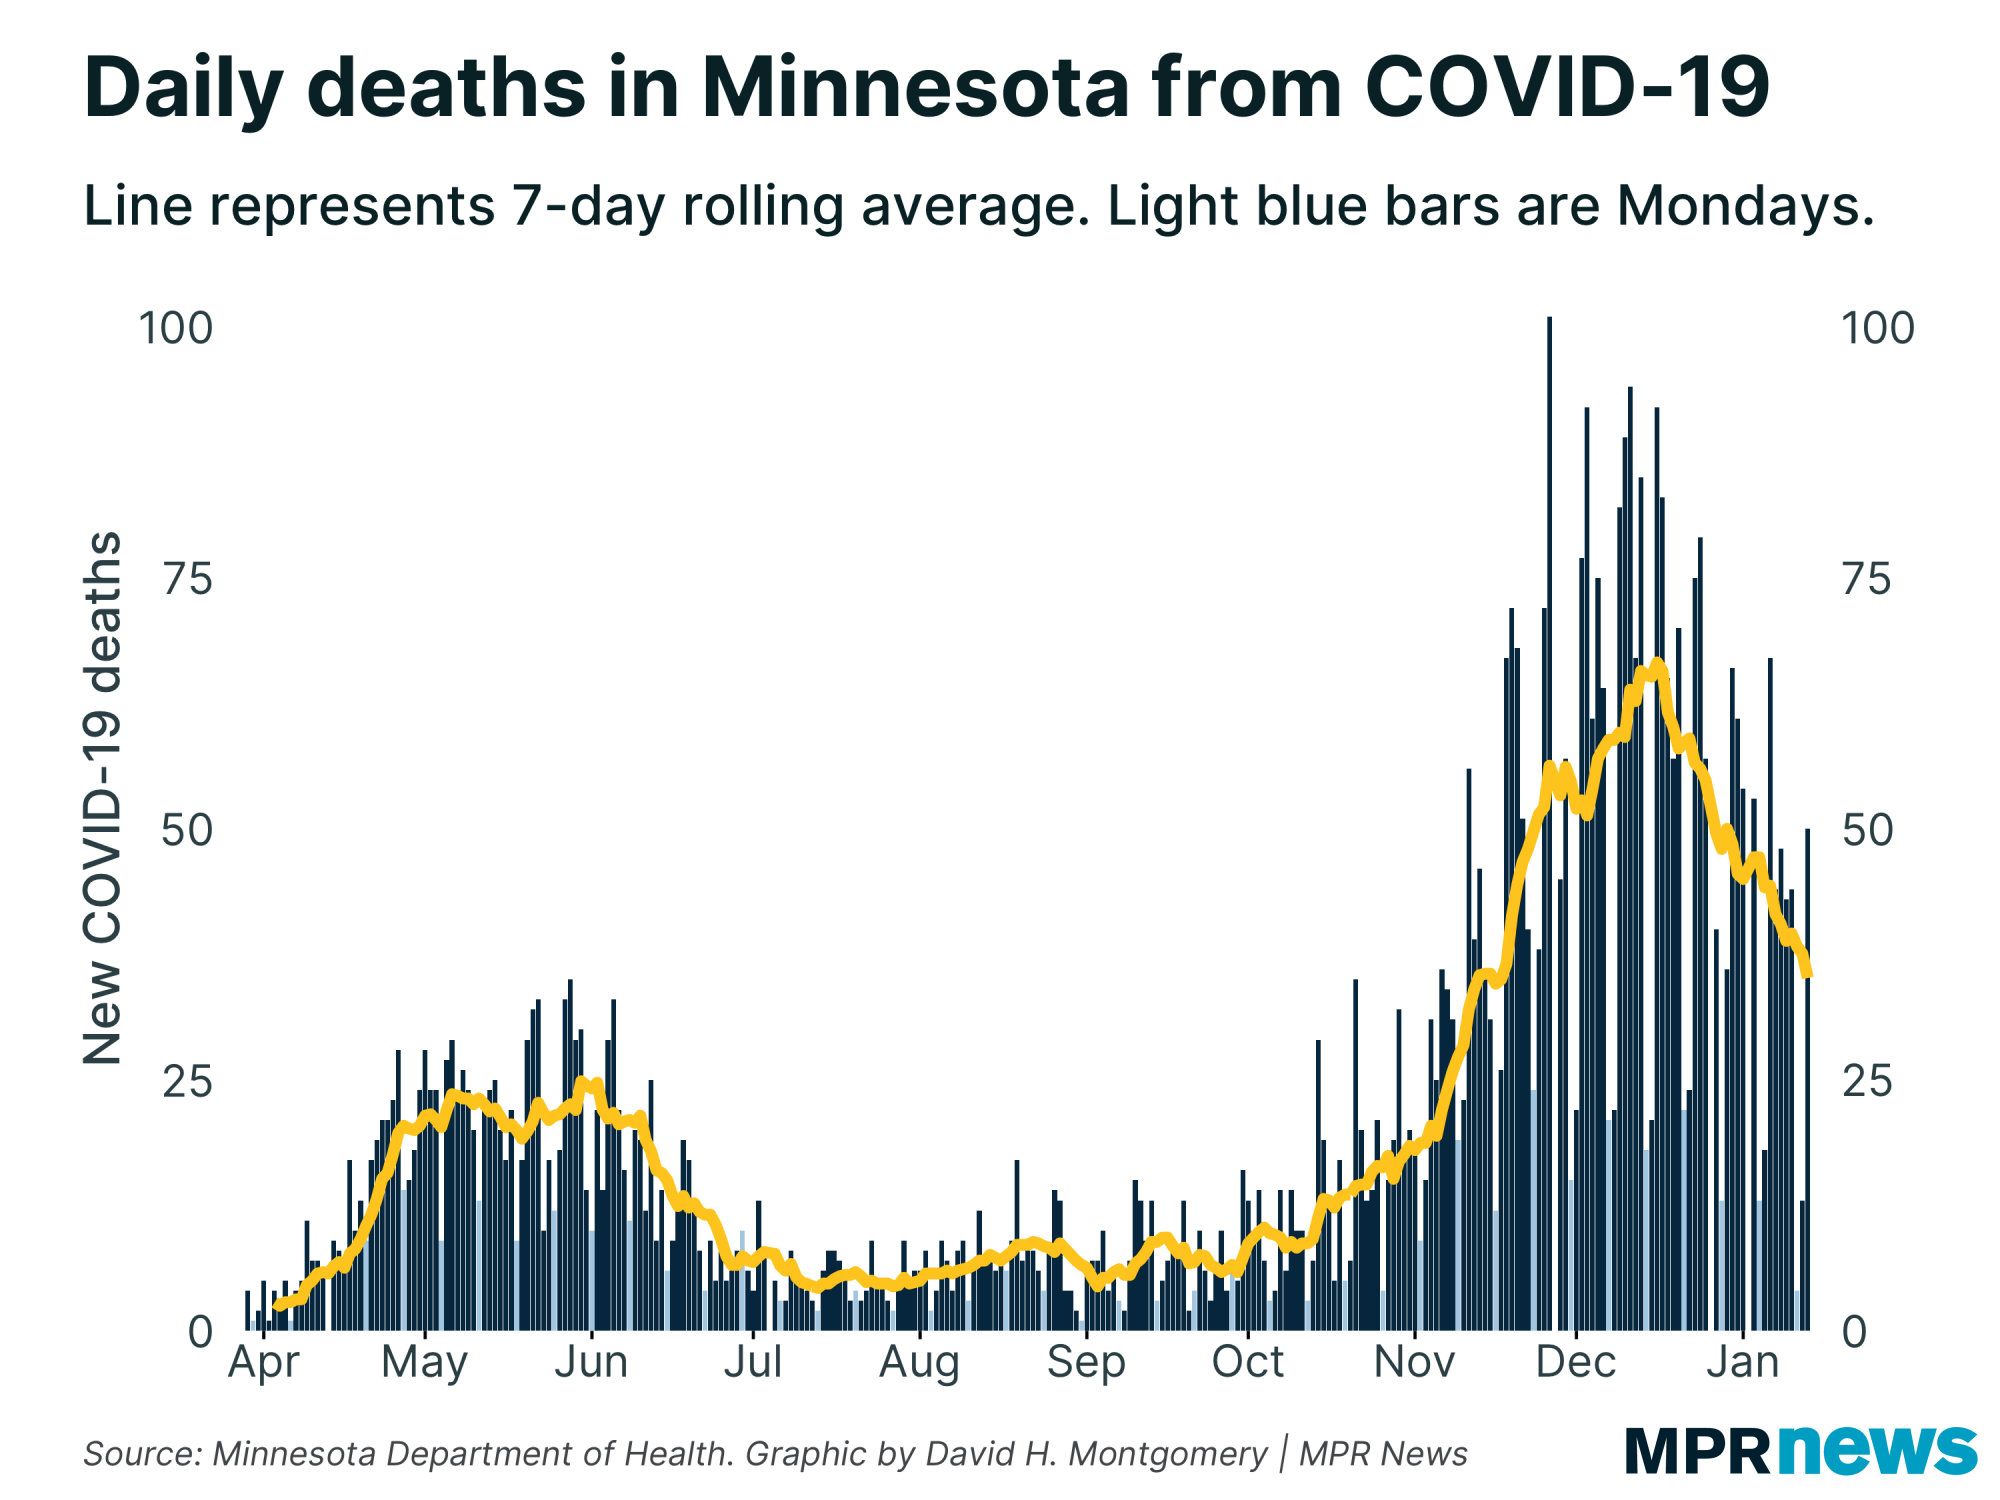 New COVID-19-related deaths are reported in Minnesota every day.